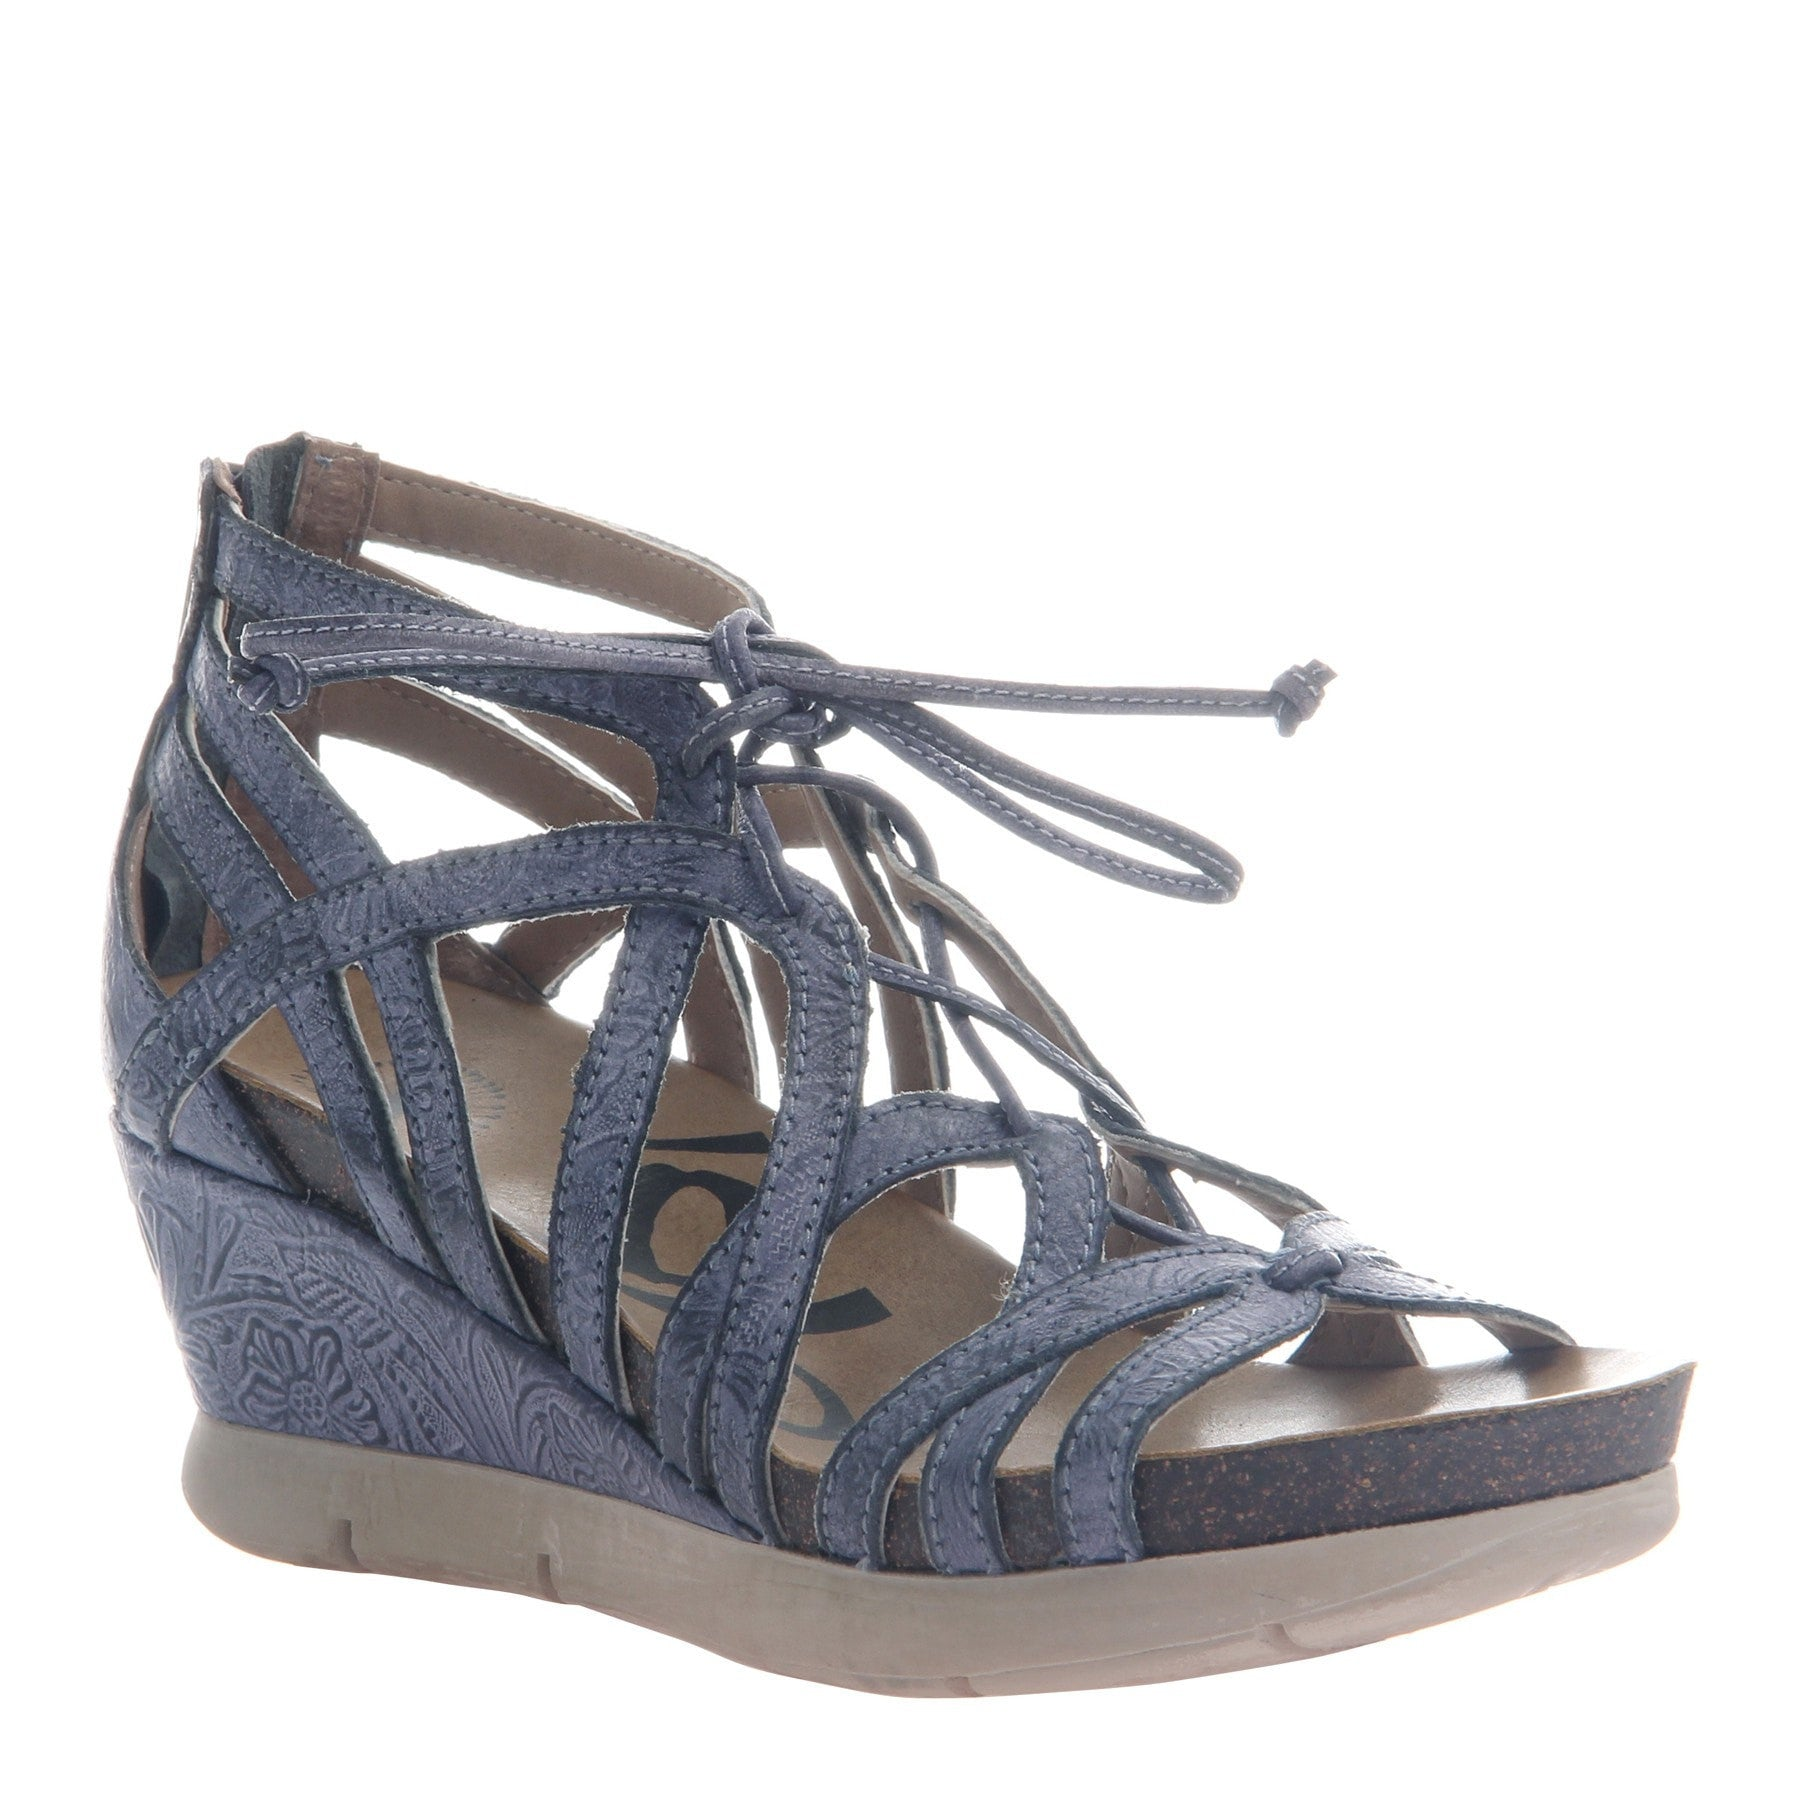 speical offer big sale special selection of NOMADIC in NAVY Wedge Sandals